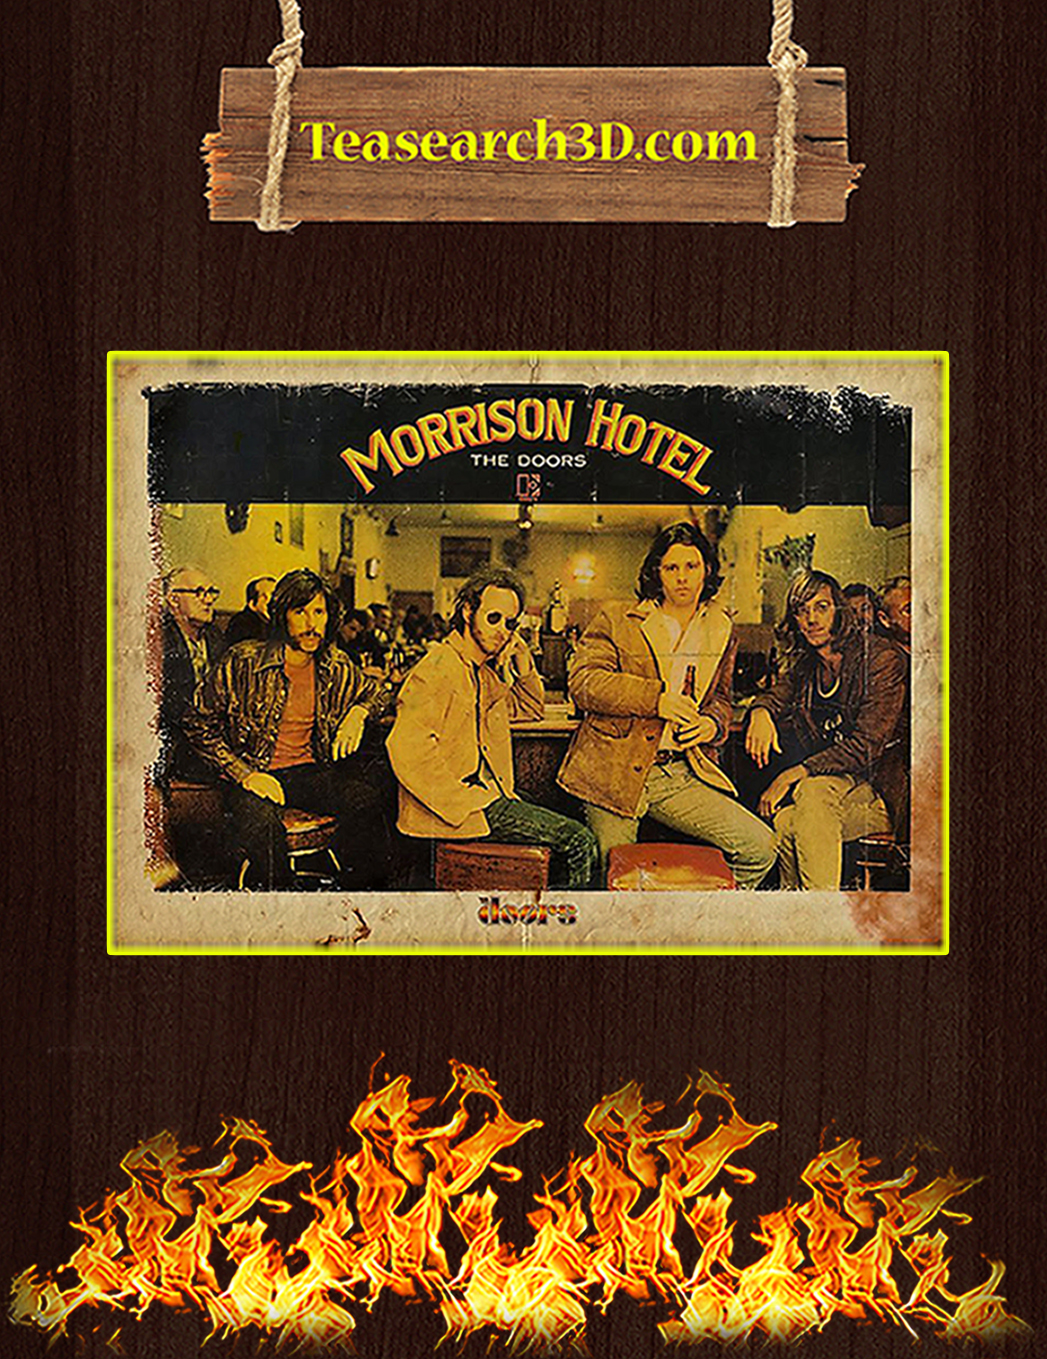 Morrison hotel the doors poster A1